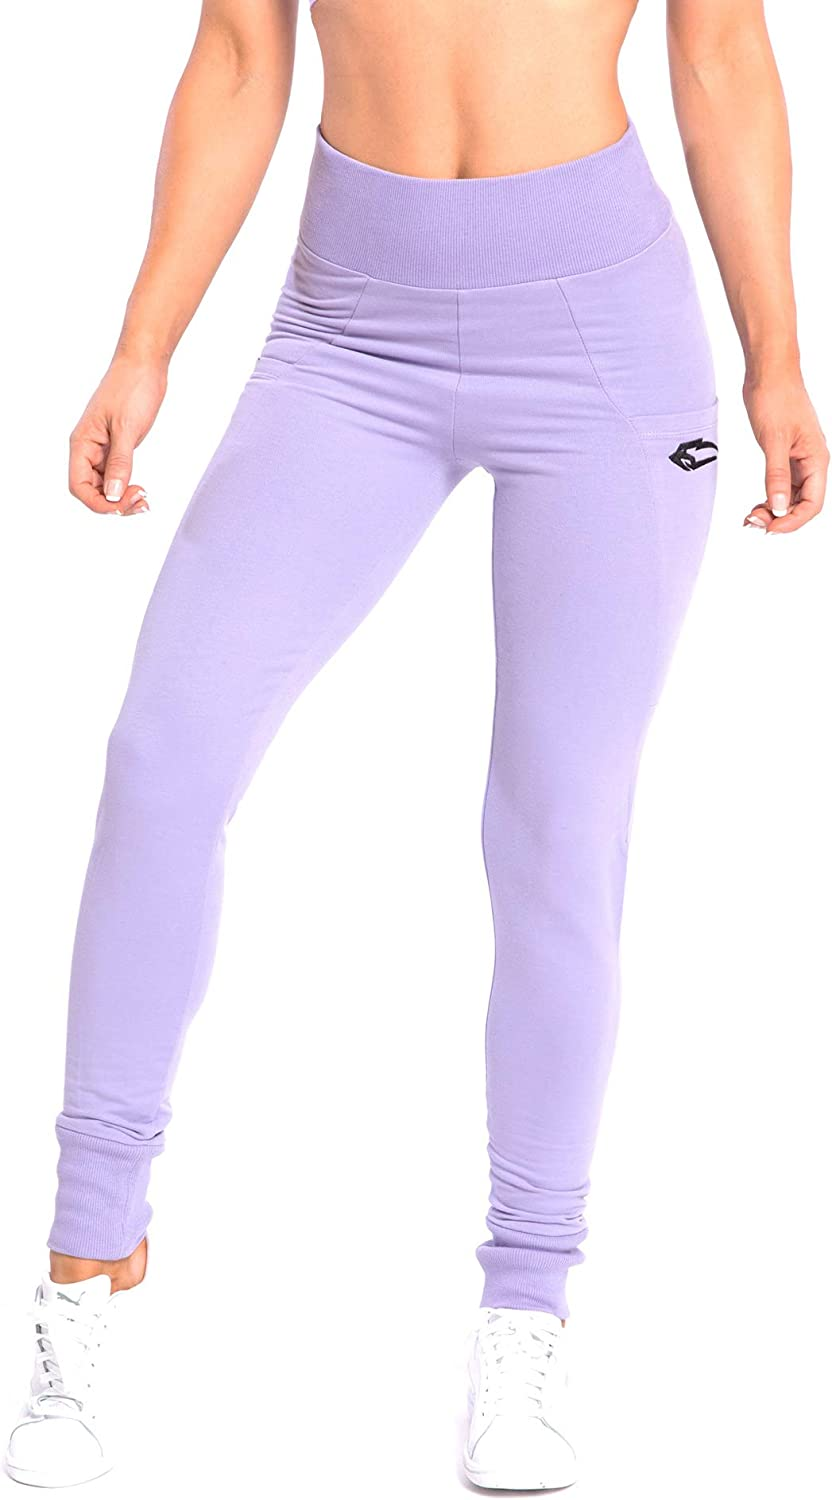 c1ba667e5610d SMILODOX SMILODOX SMILODOX Damen Jogginghose  Delicate  Trainingshose  f uuml r Sport Fitness Gym Training Sportleggings - Jogger Pants -  Sweatpants Hosen ...